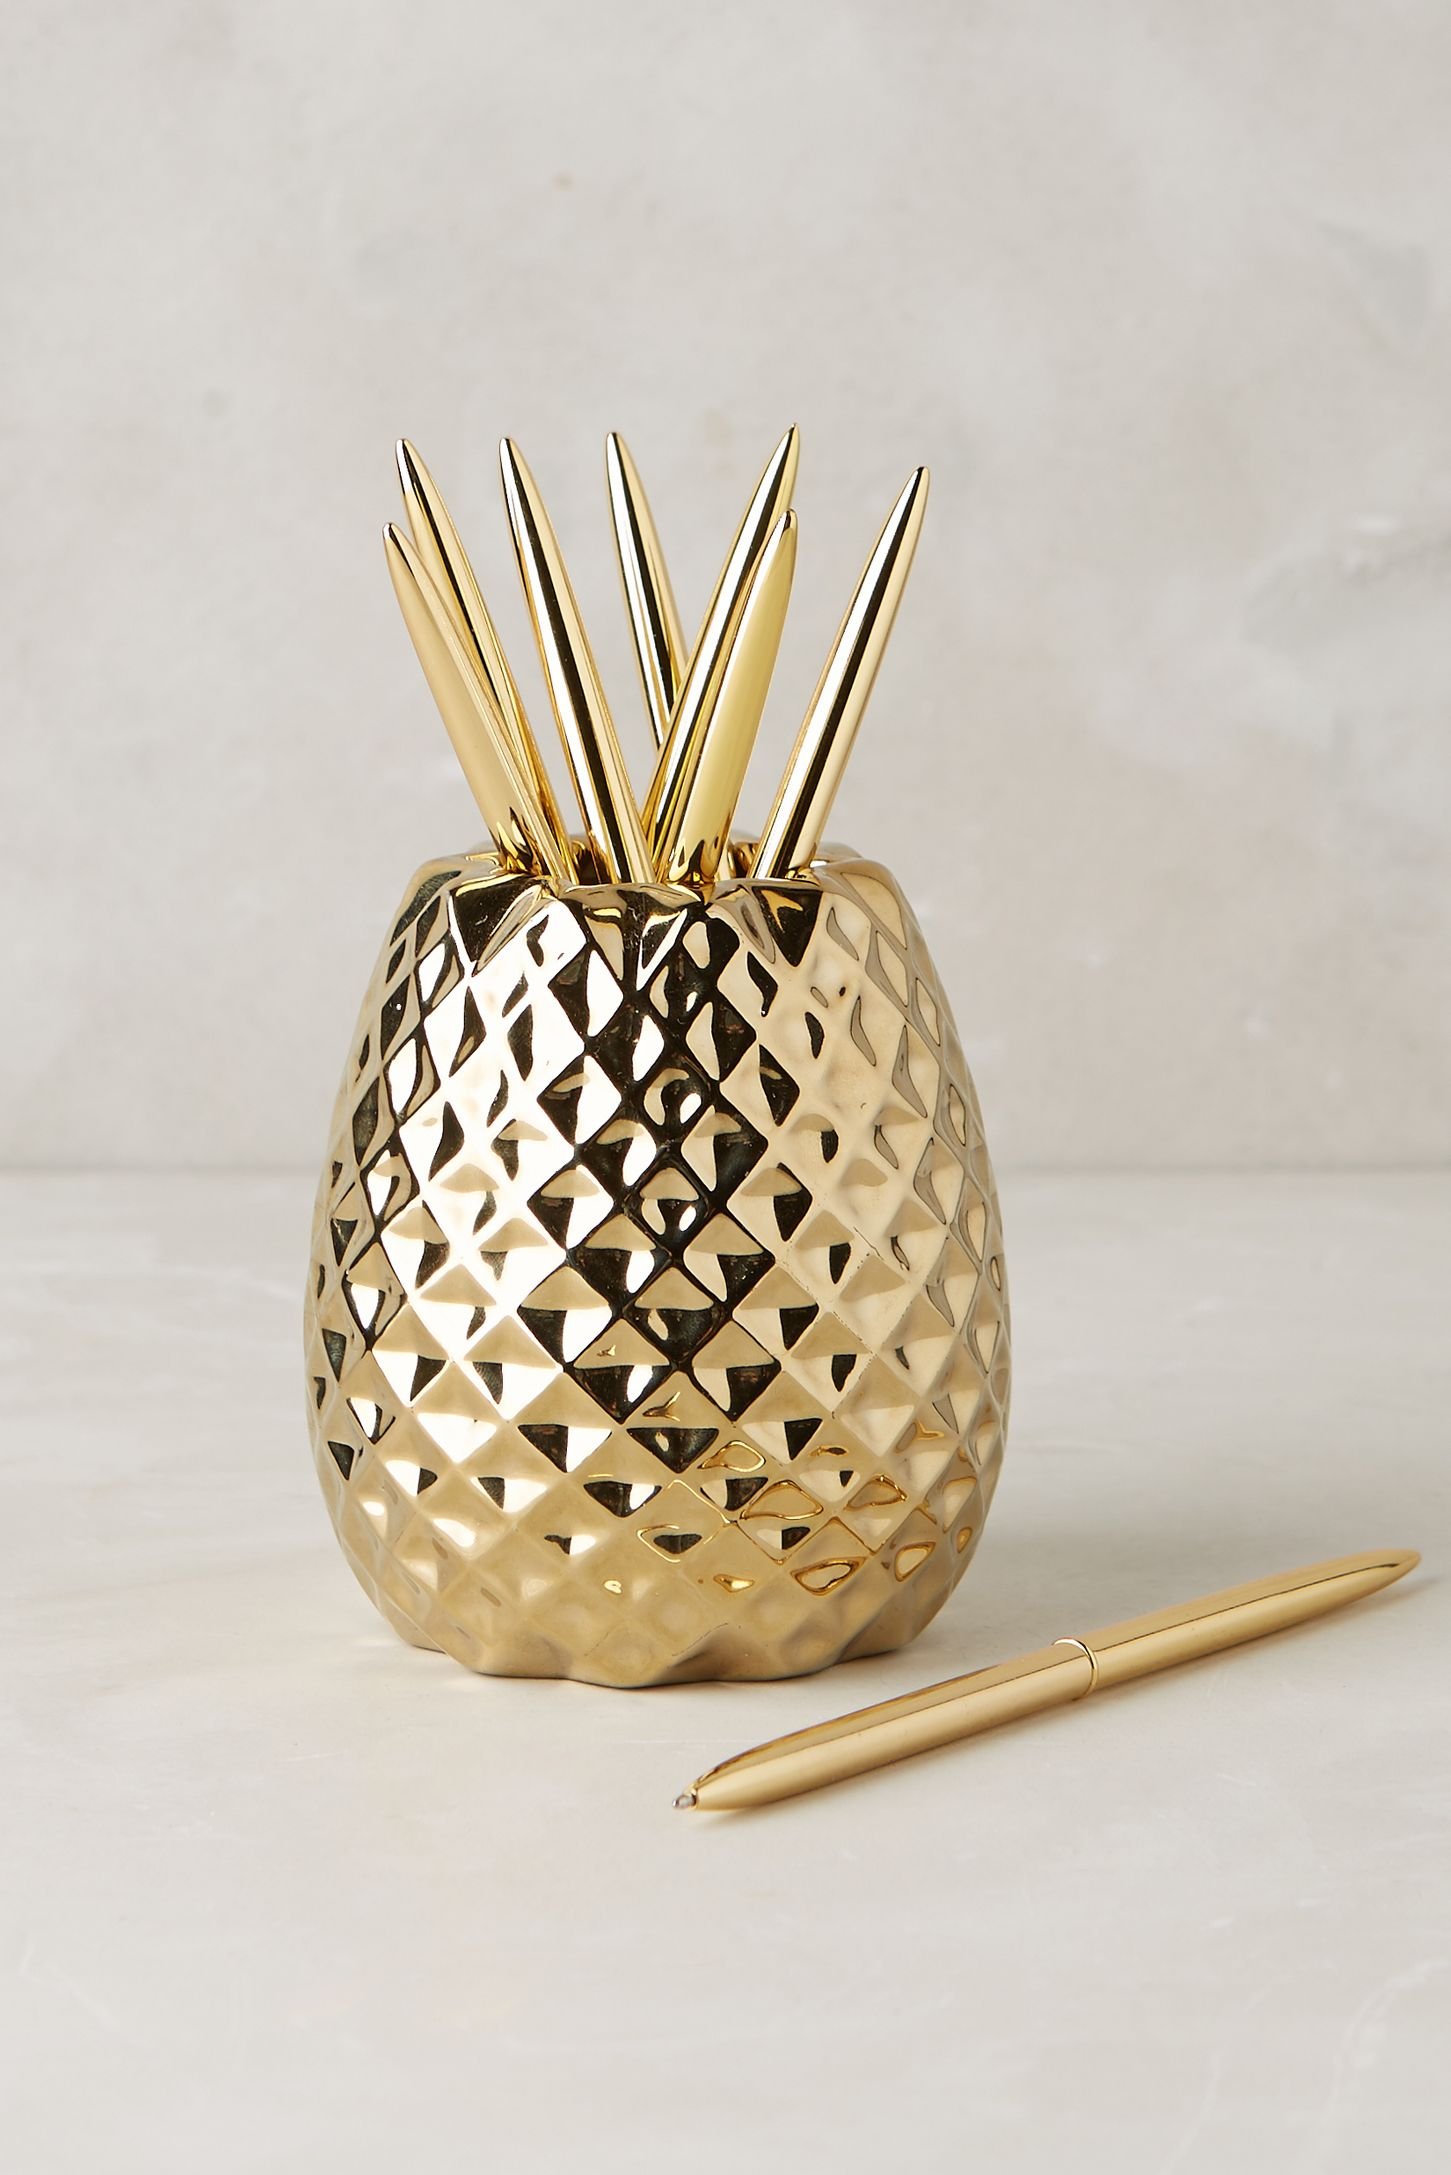 Pineapple Accessories pineapple pencil holder | anthropologie